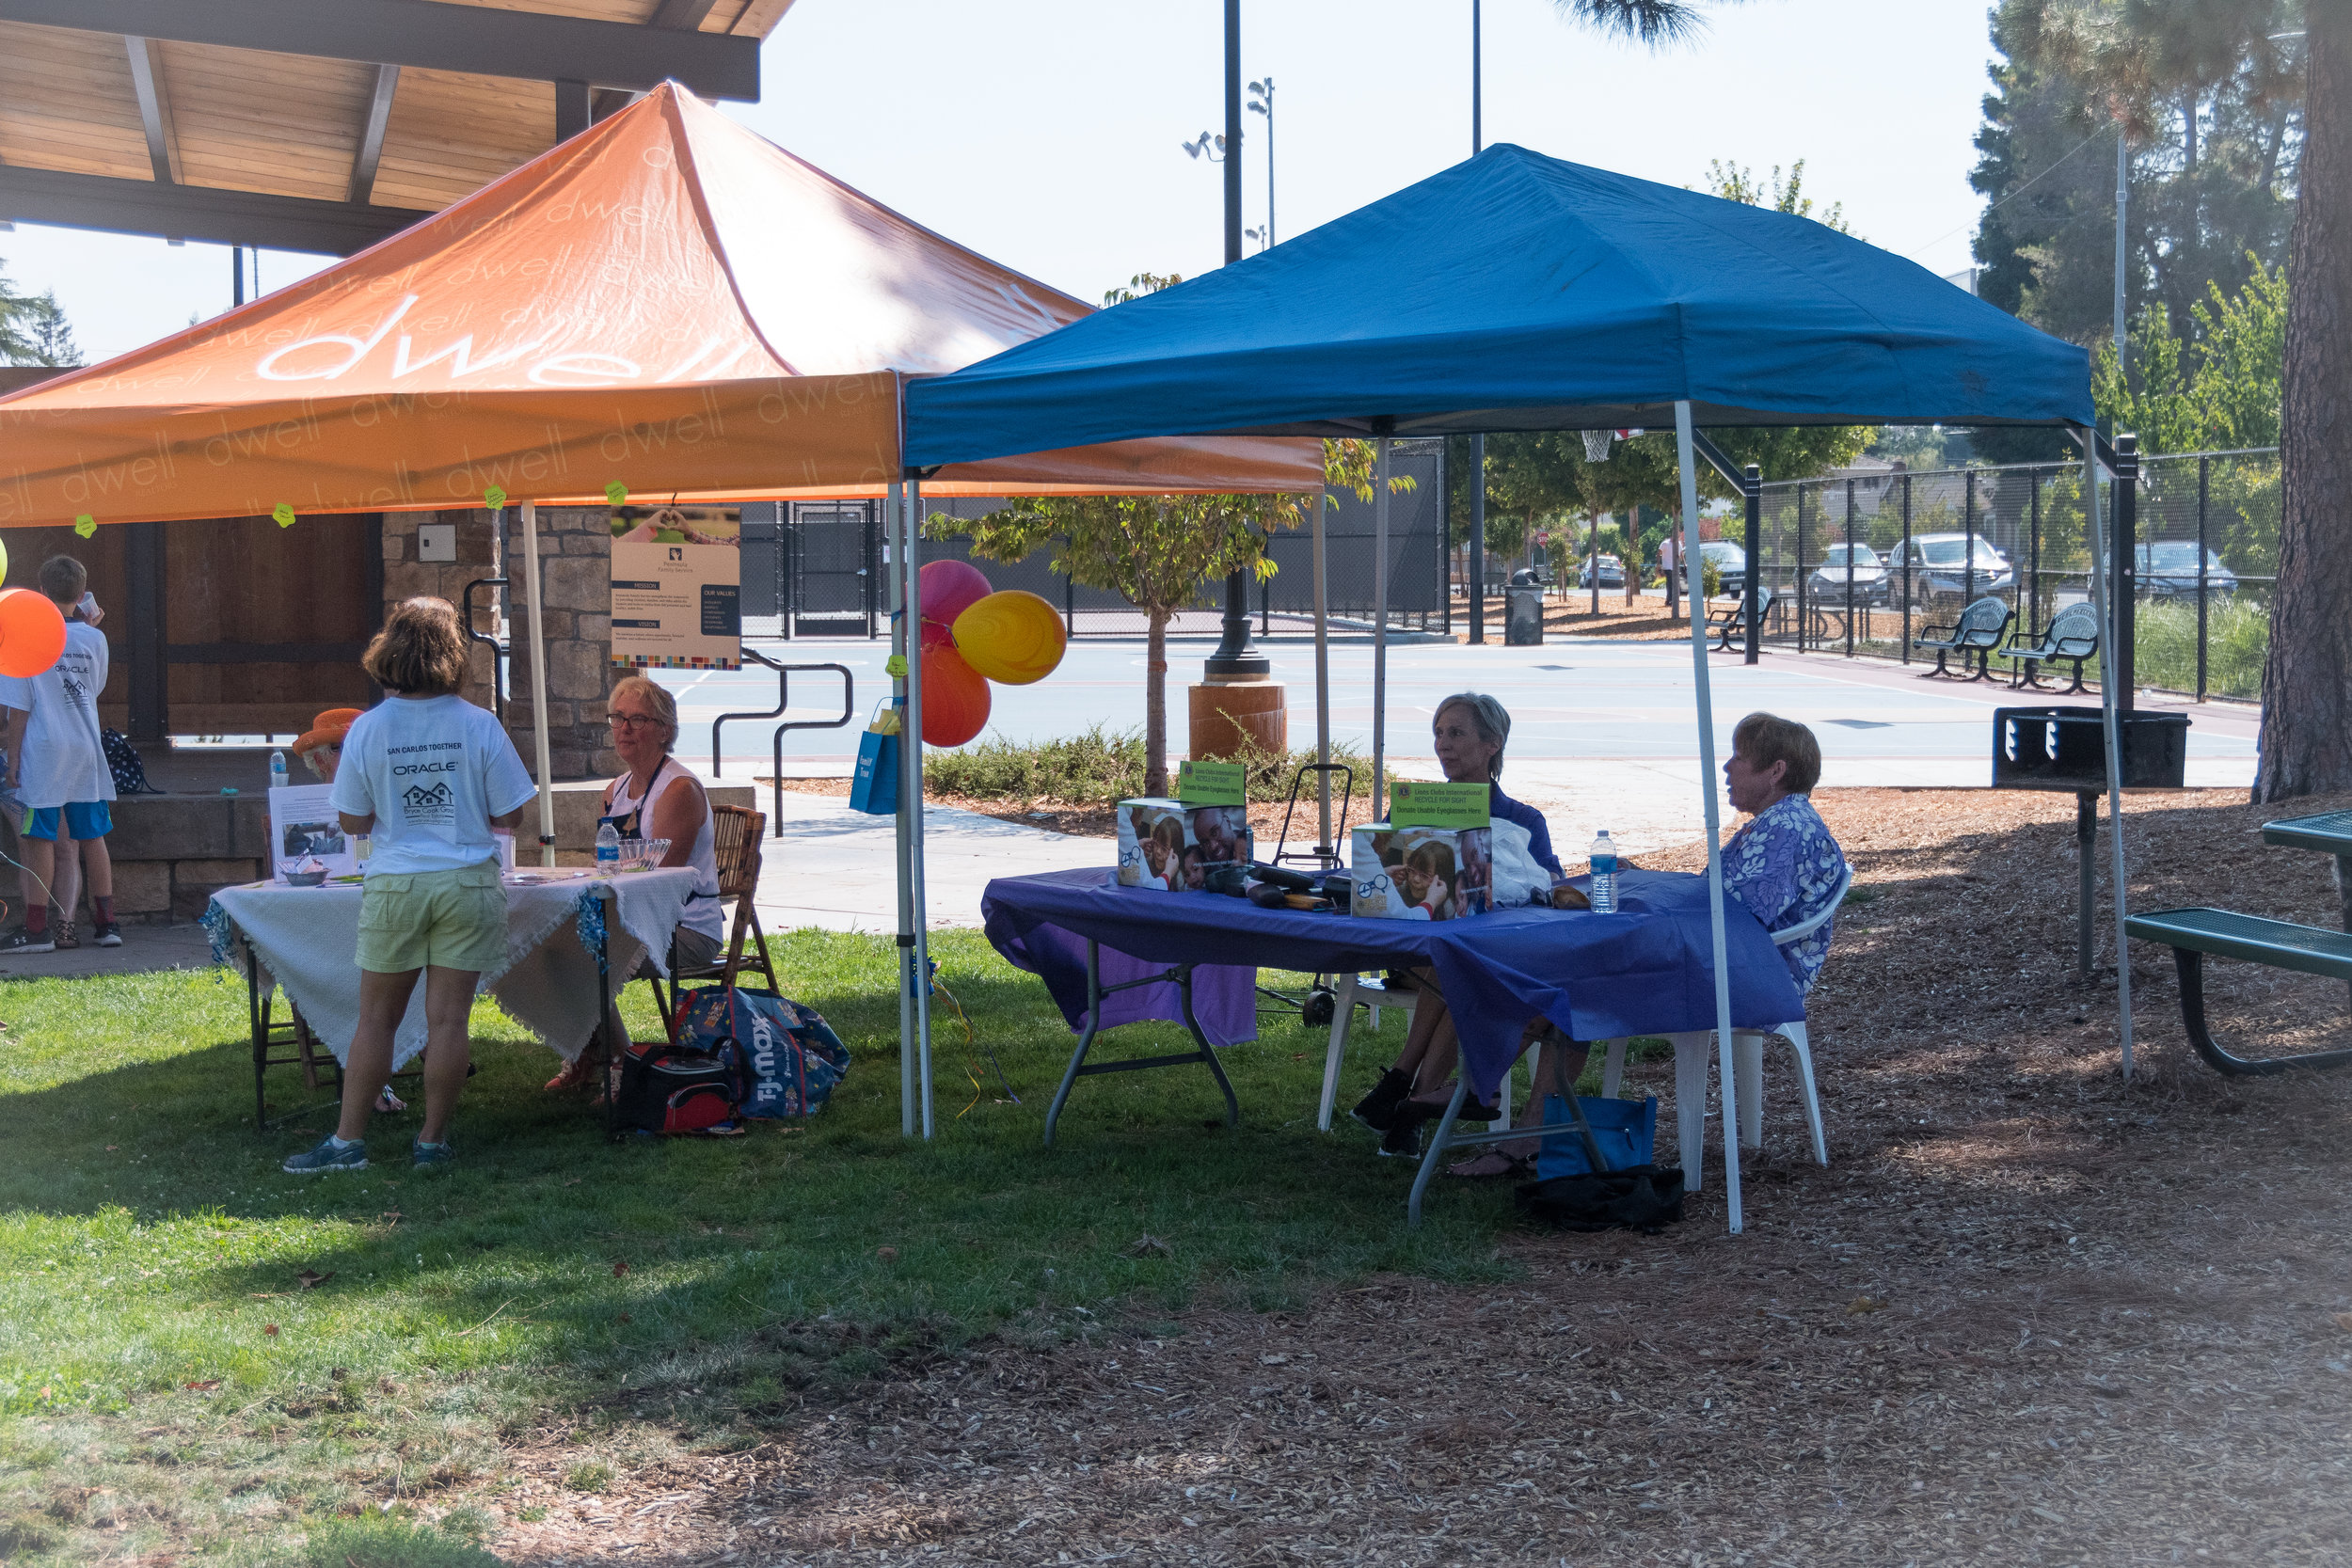 The Family Tree and the Lions Club Booths at Burton Park